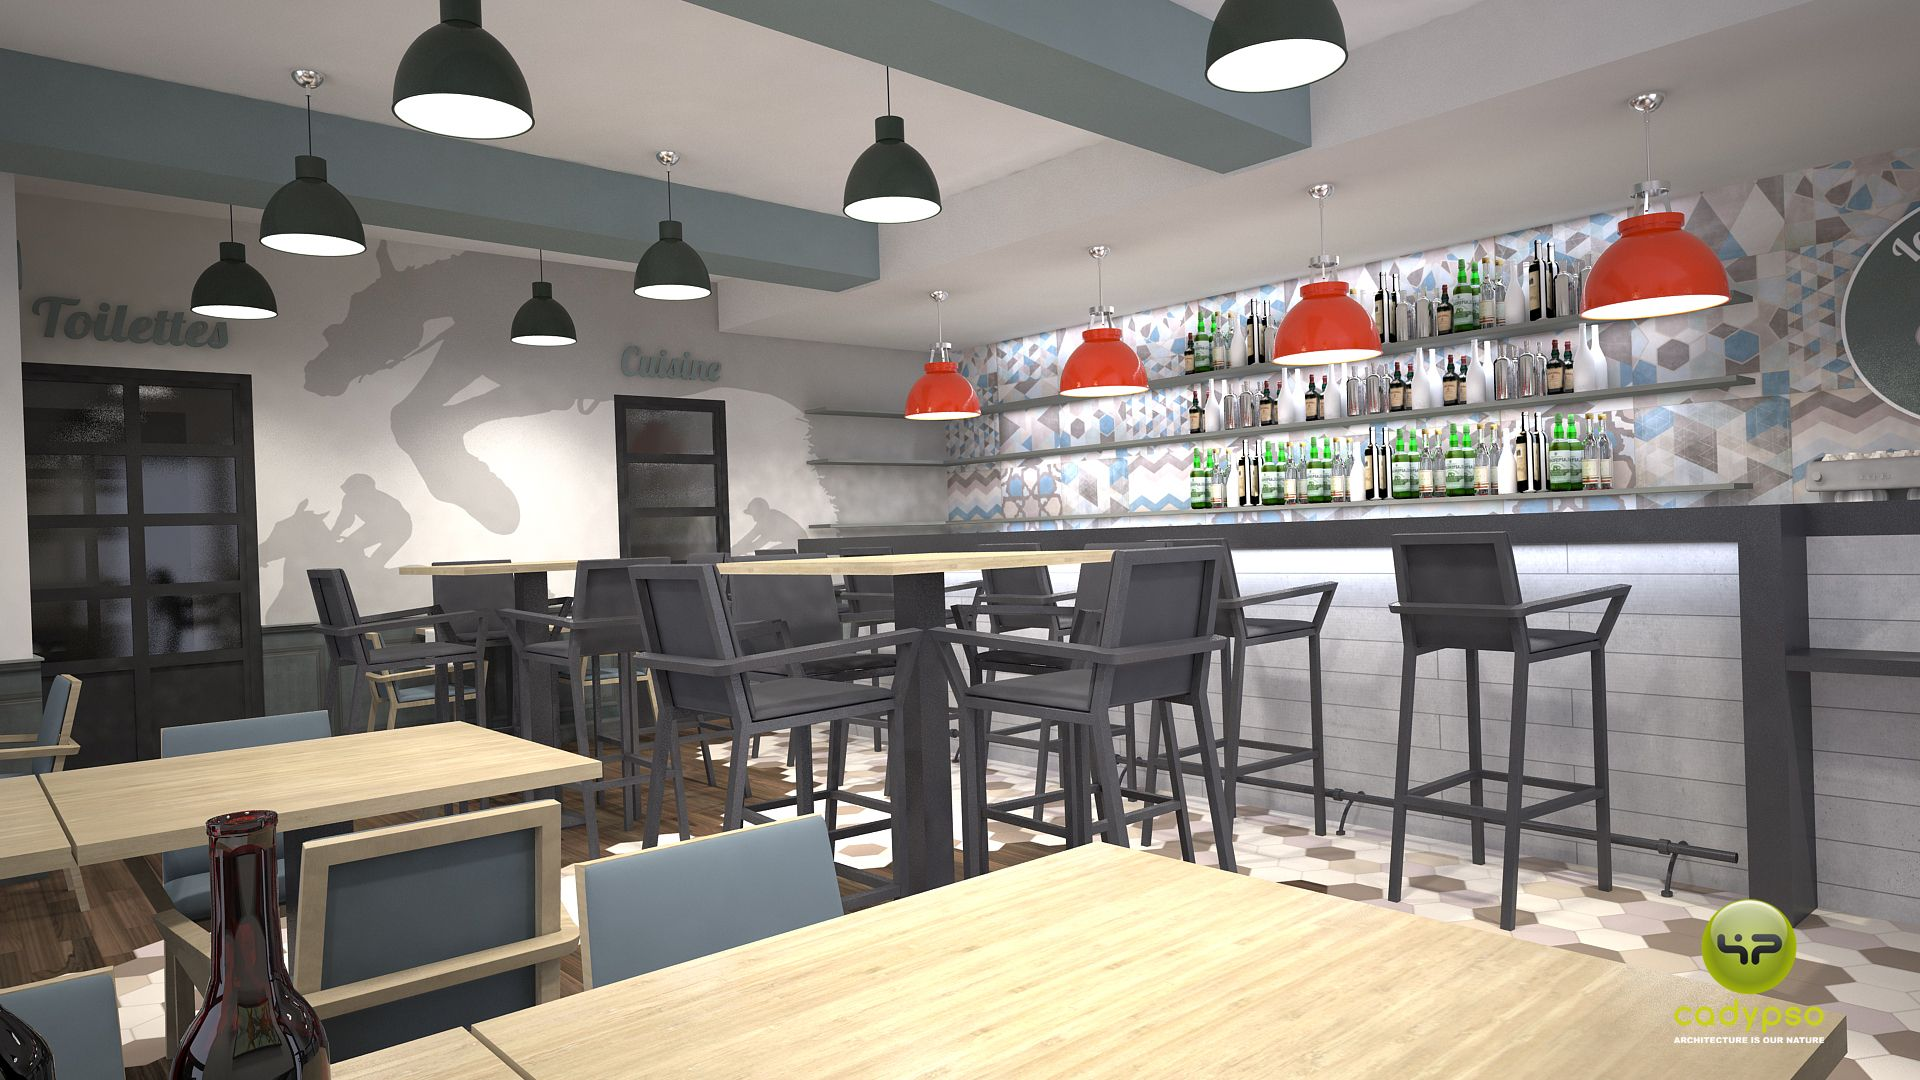 Amenagement Bar Pmu Par Www Cadypso Com Architecture D Interieur Agencement Magasins Erp Maison Et Appartement Architecture Interieure Agencement Magasin